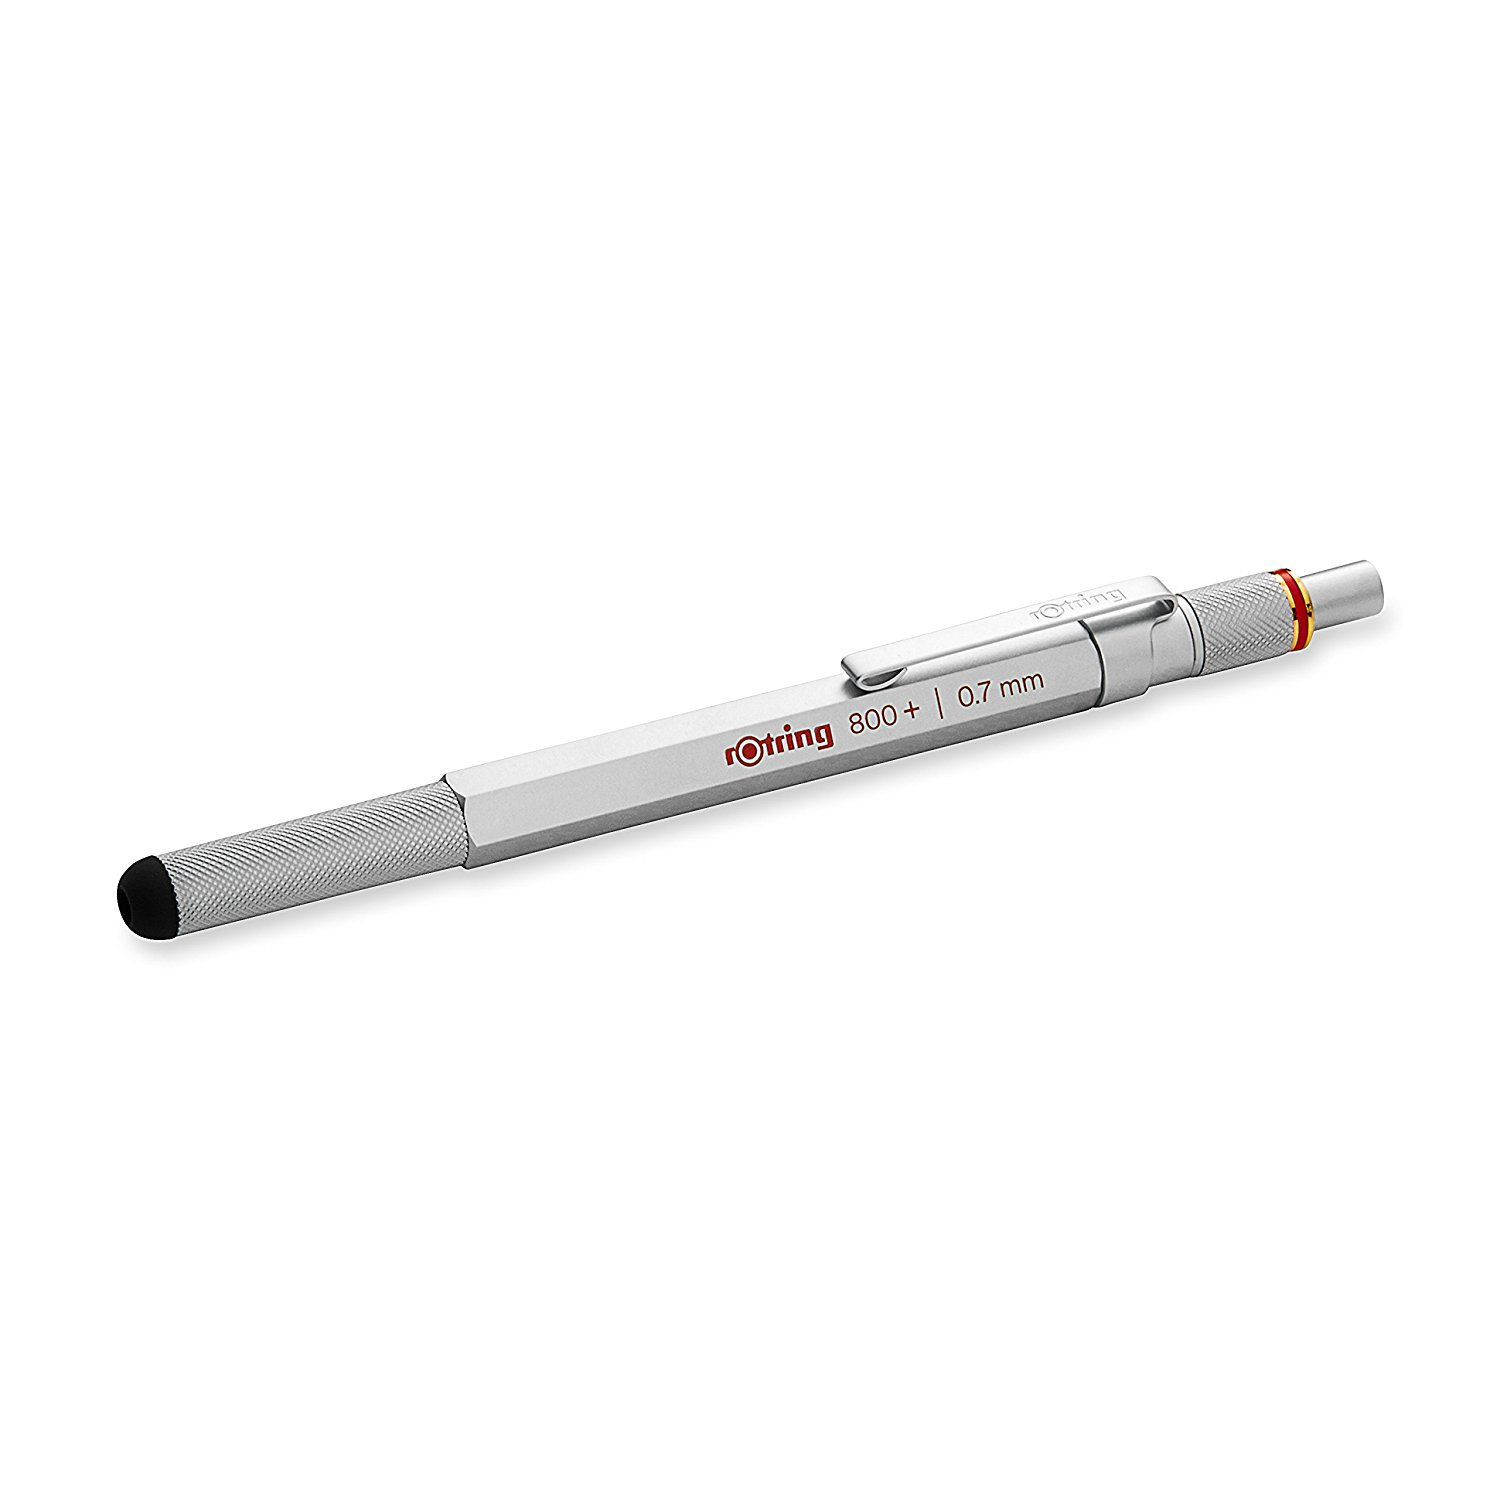 rOtring 1900184 800+ Mechanical Pencil and Touchscreen Stylus, 0.7 mm, Silver Barrel by Rotring (Image #2)